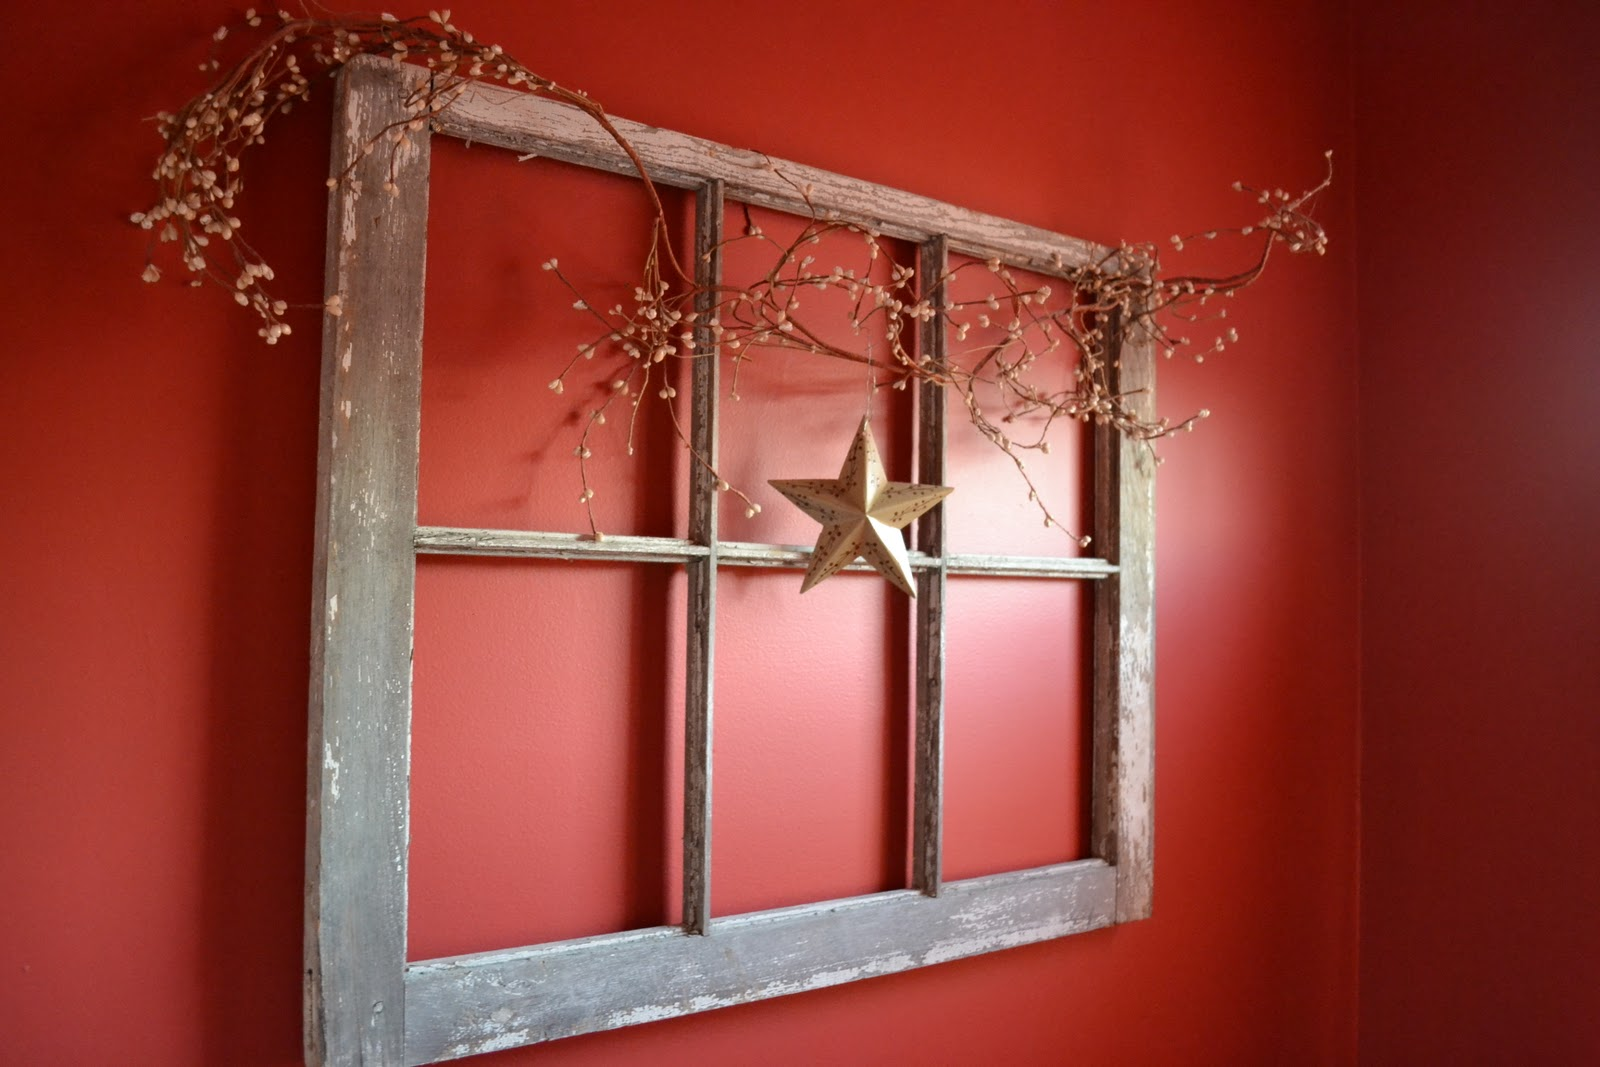 Thrifty Decorating: Old windows as wall decor